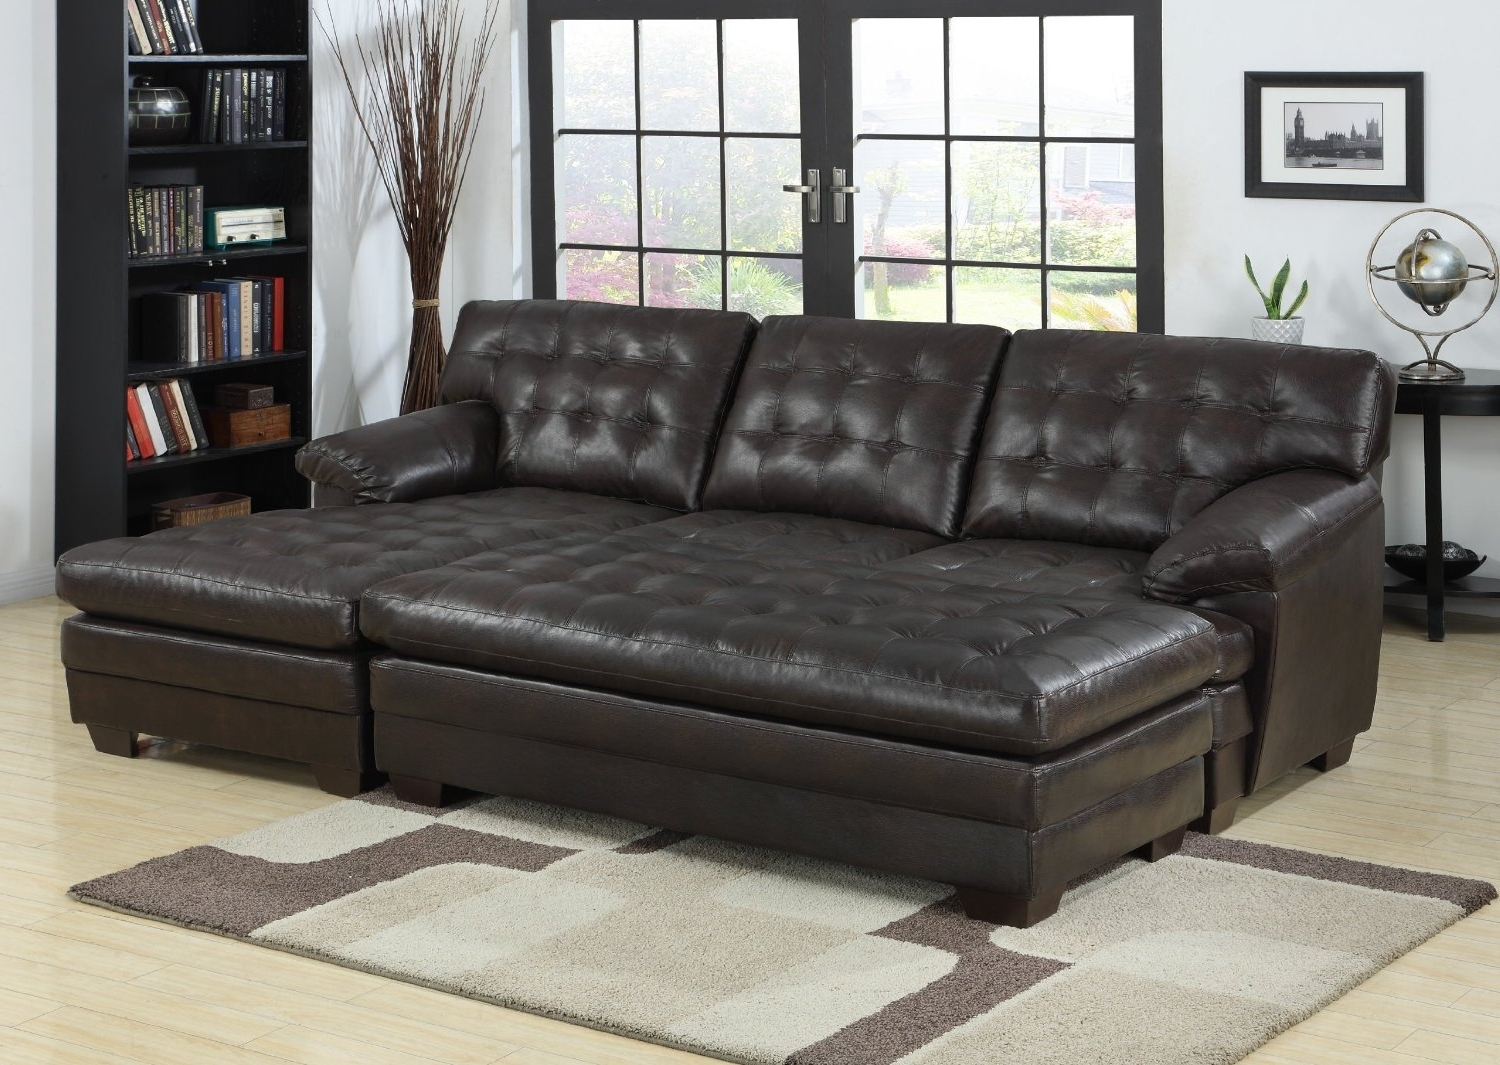 2018 Double Wide Chaise Lounges With Regard To Double Chaise Lounge Sofa Image Gallery — The Home Redesign : The (View 3 of 15)